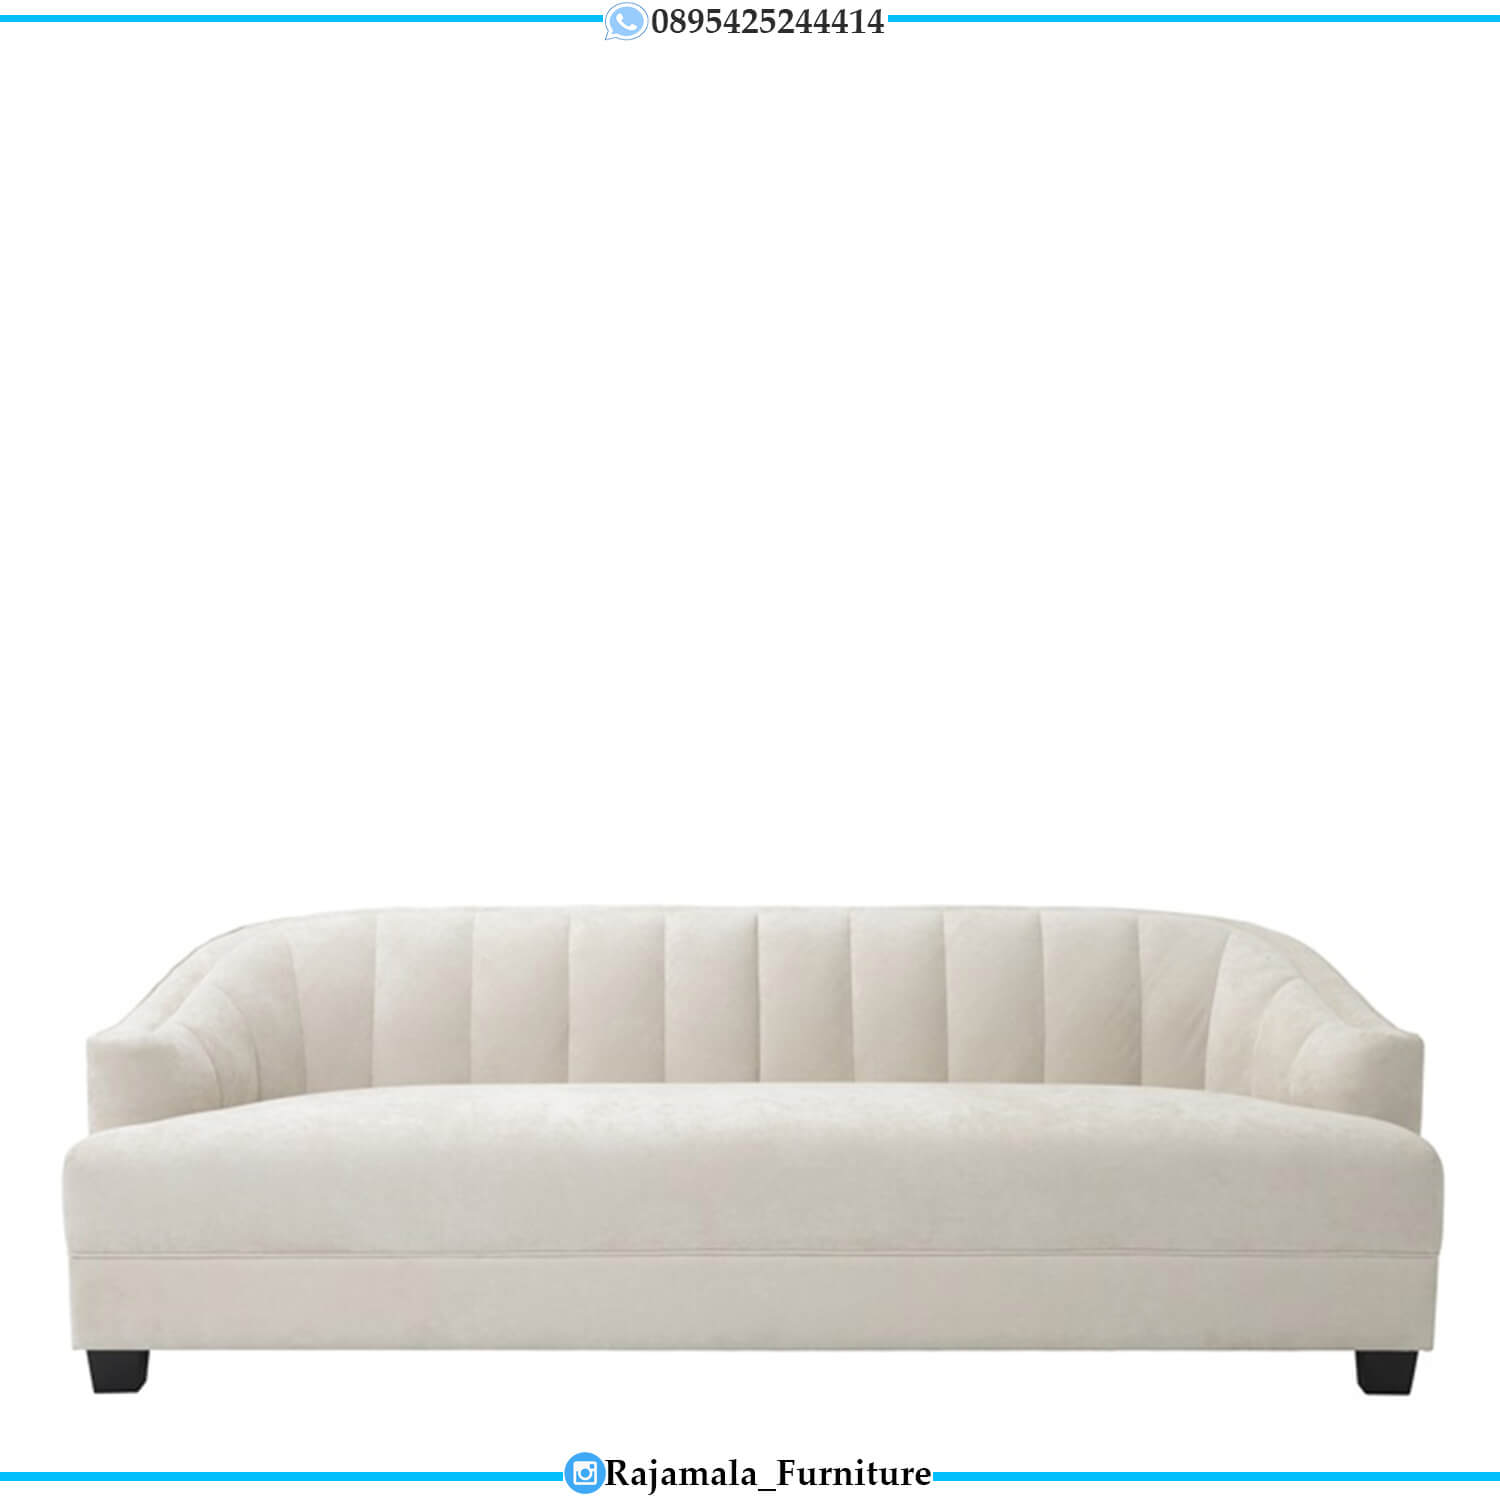 Sofa Minimalis Jepara Terbaru Soft Royal Foam Luxury Classic RM-0542